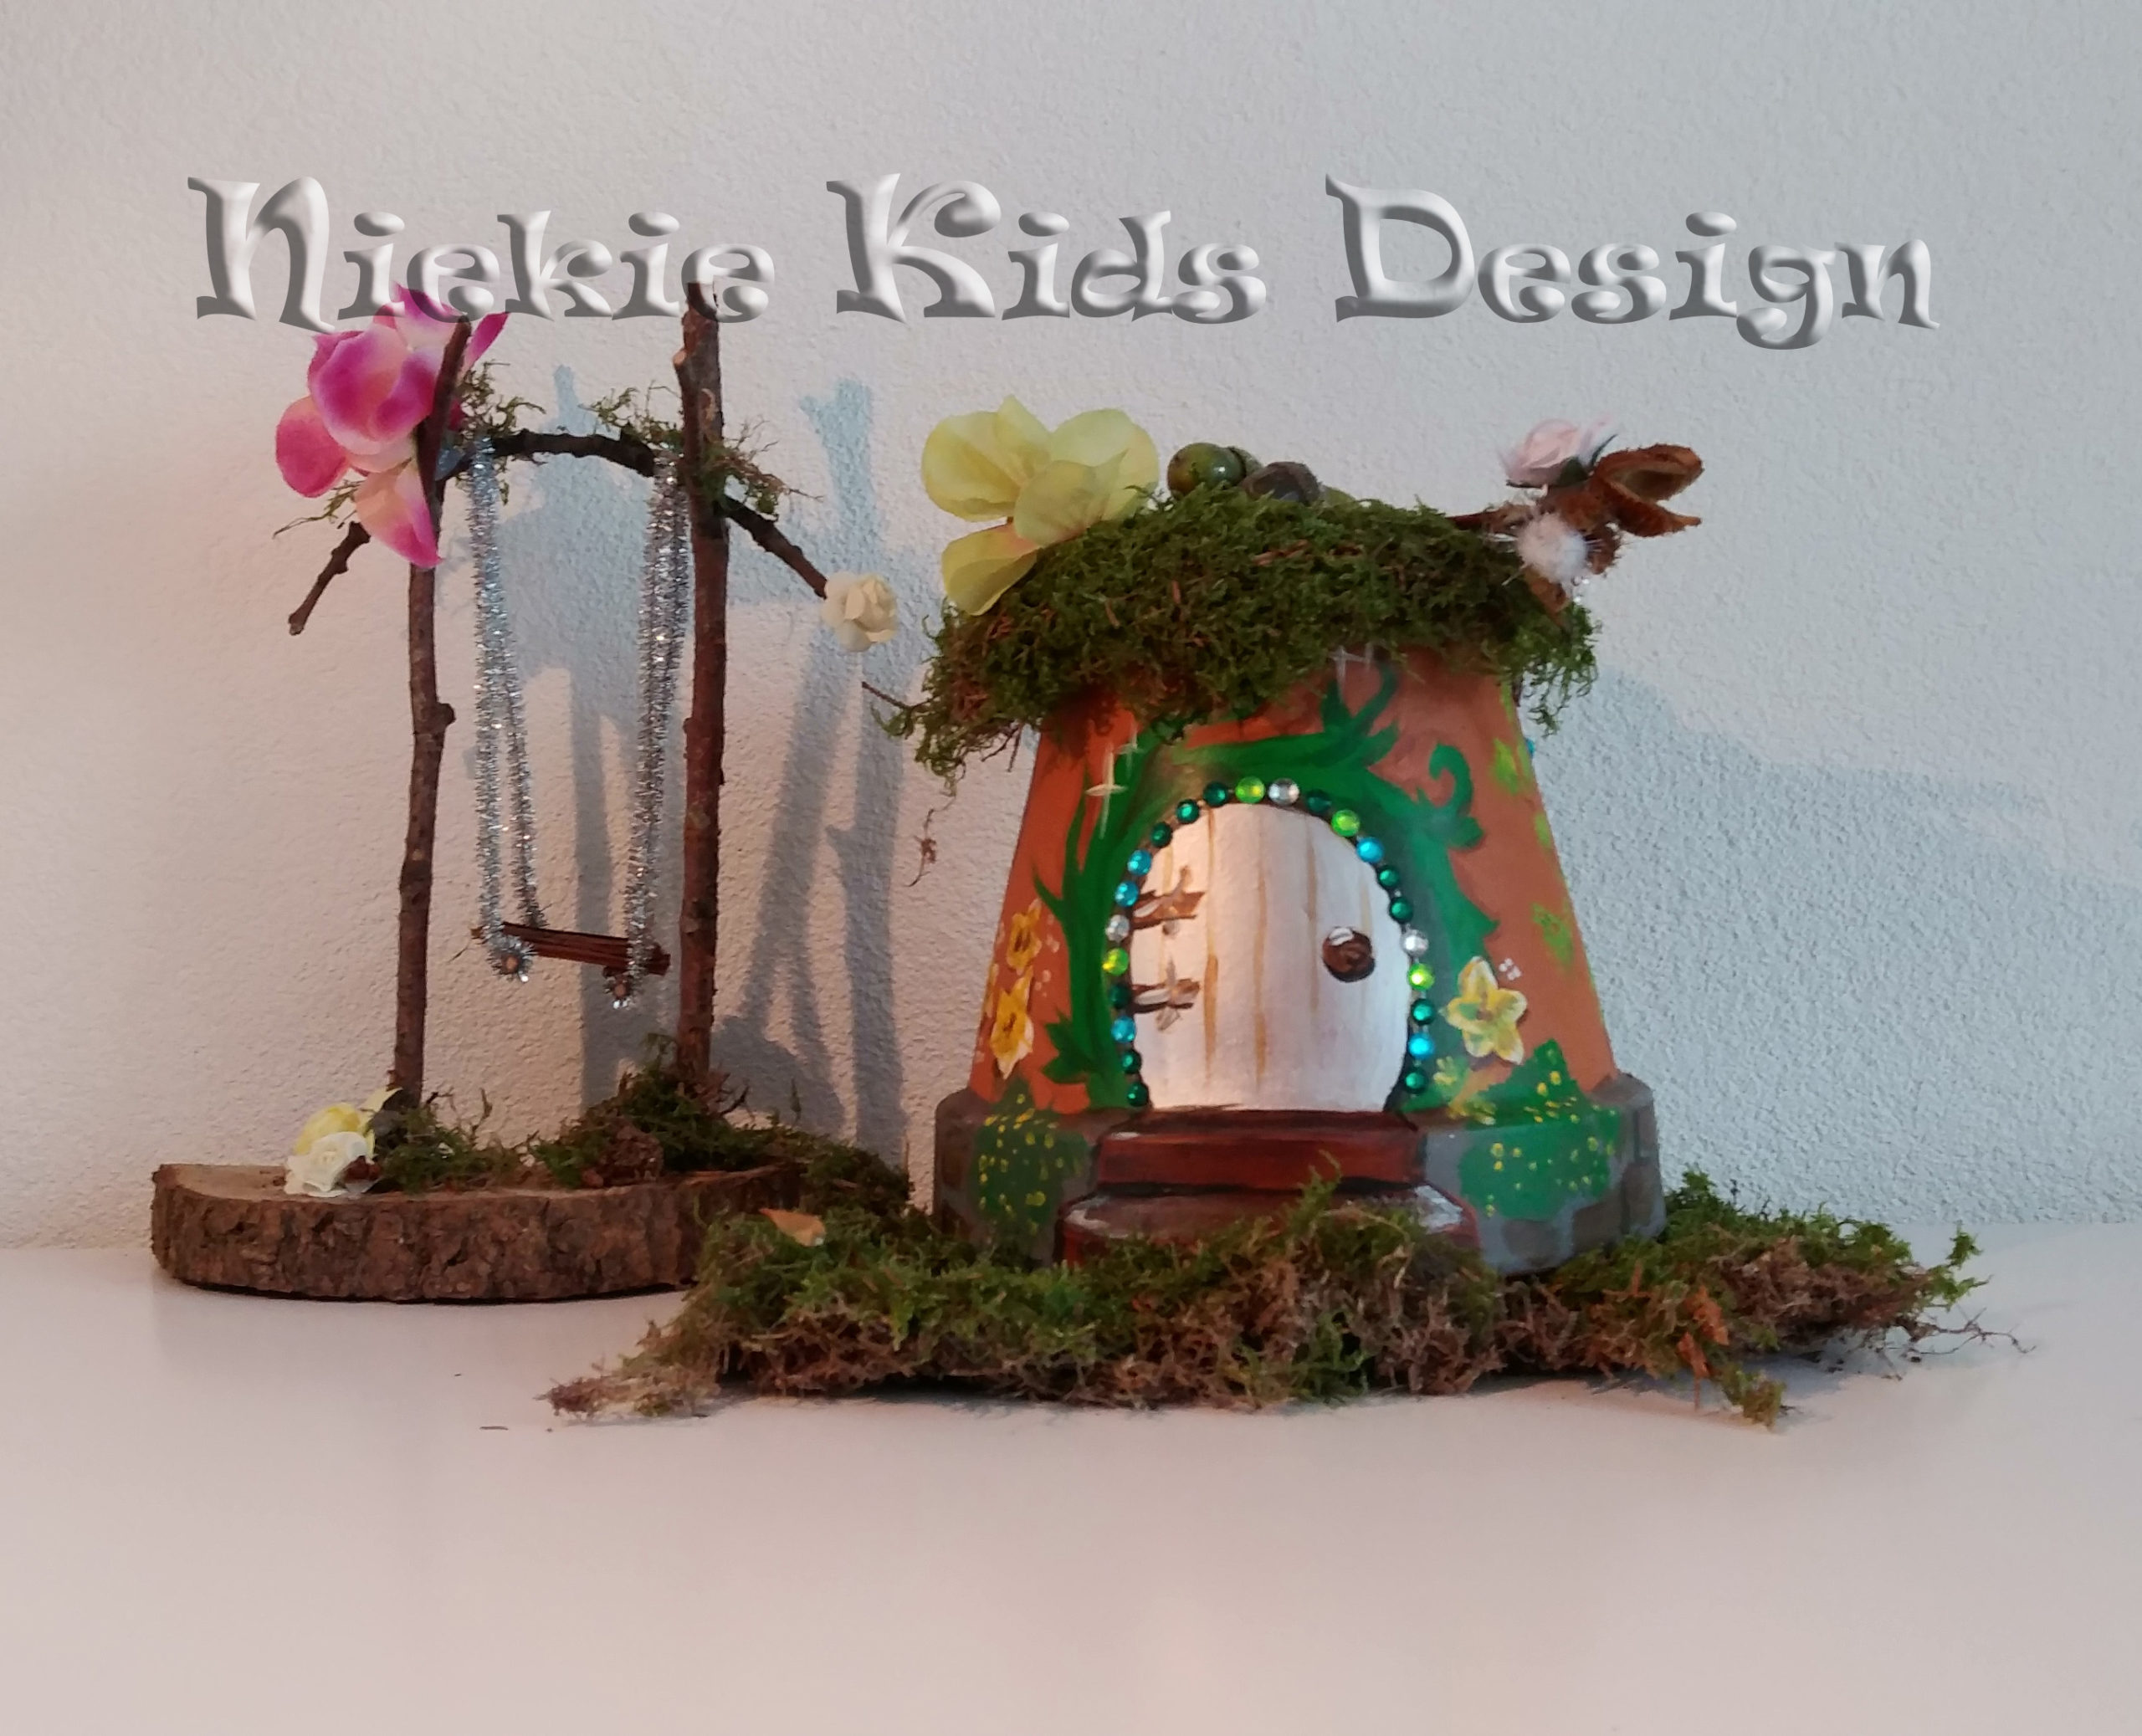 Elfen huisje Niekie Kids Design